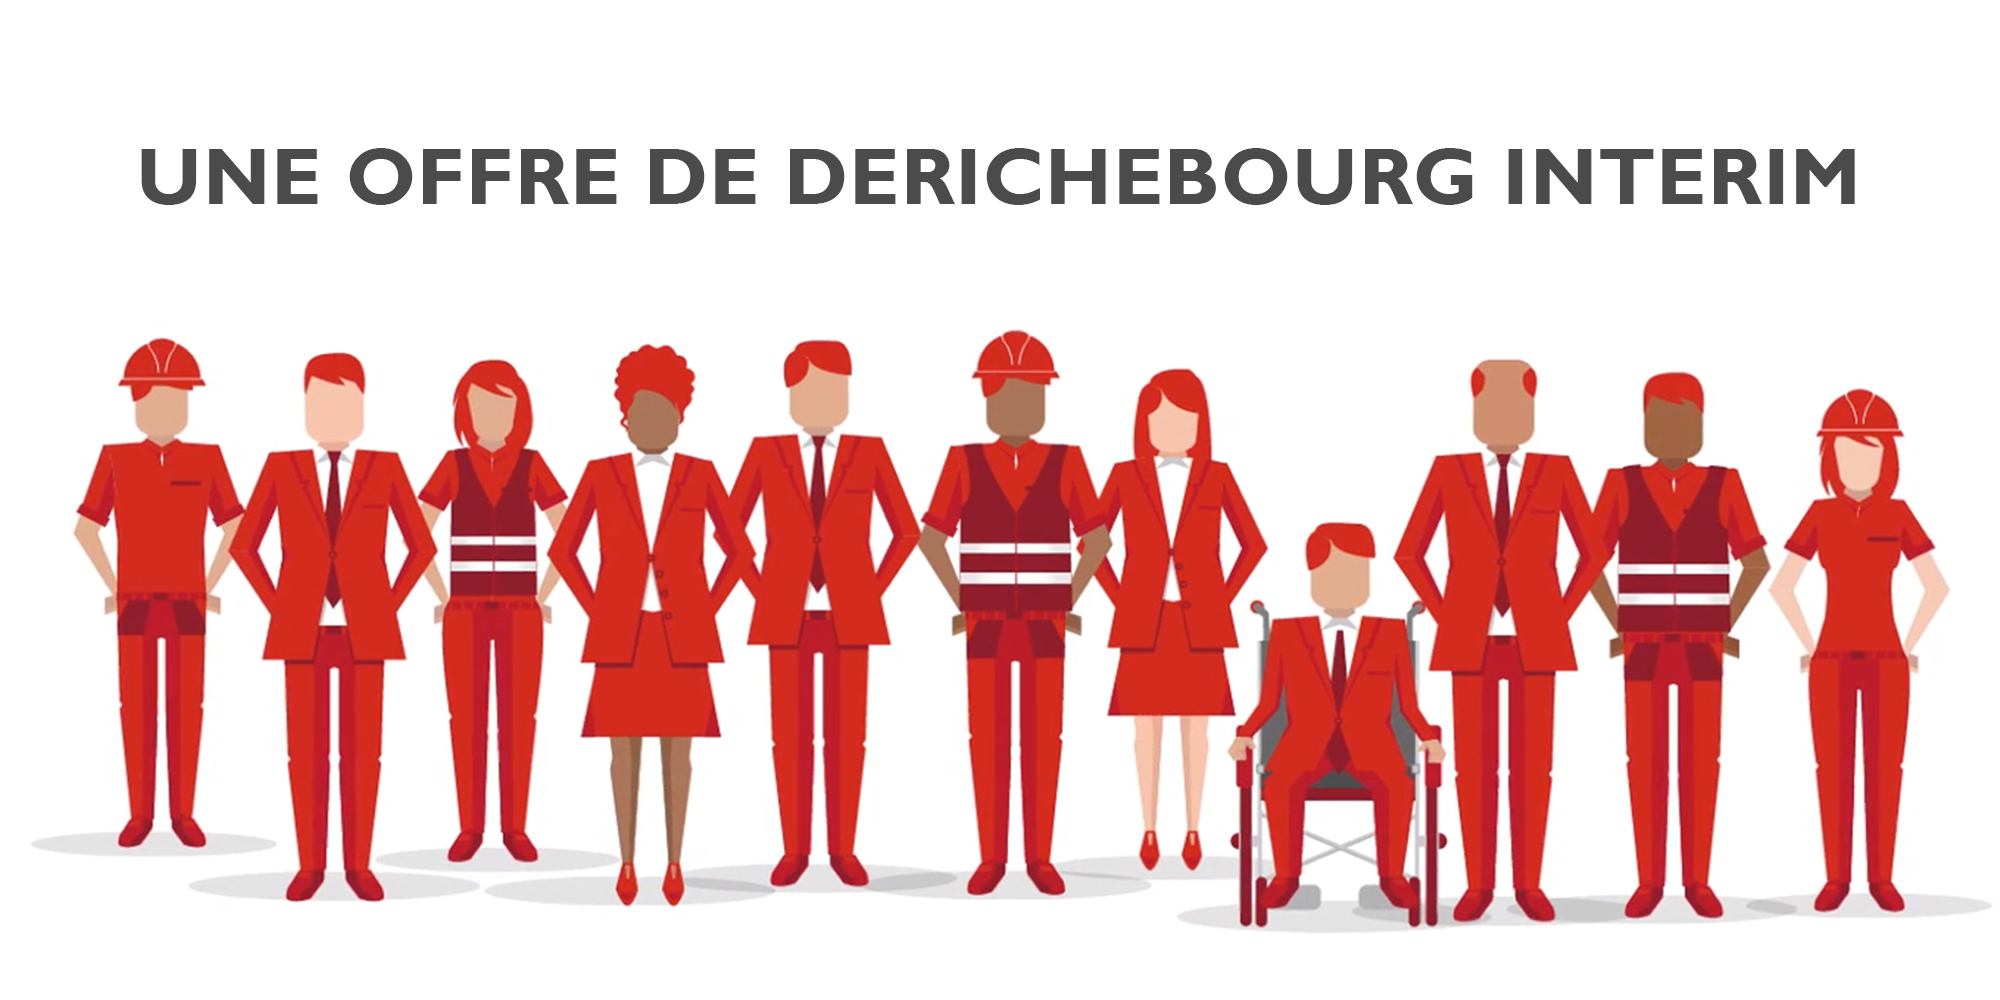 Derichebourg Interim